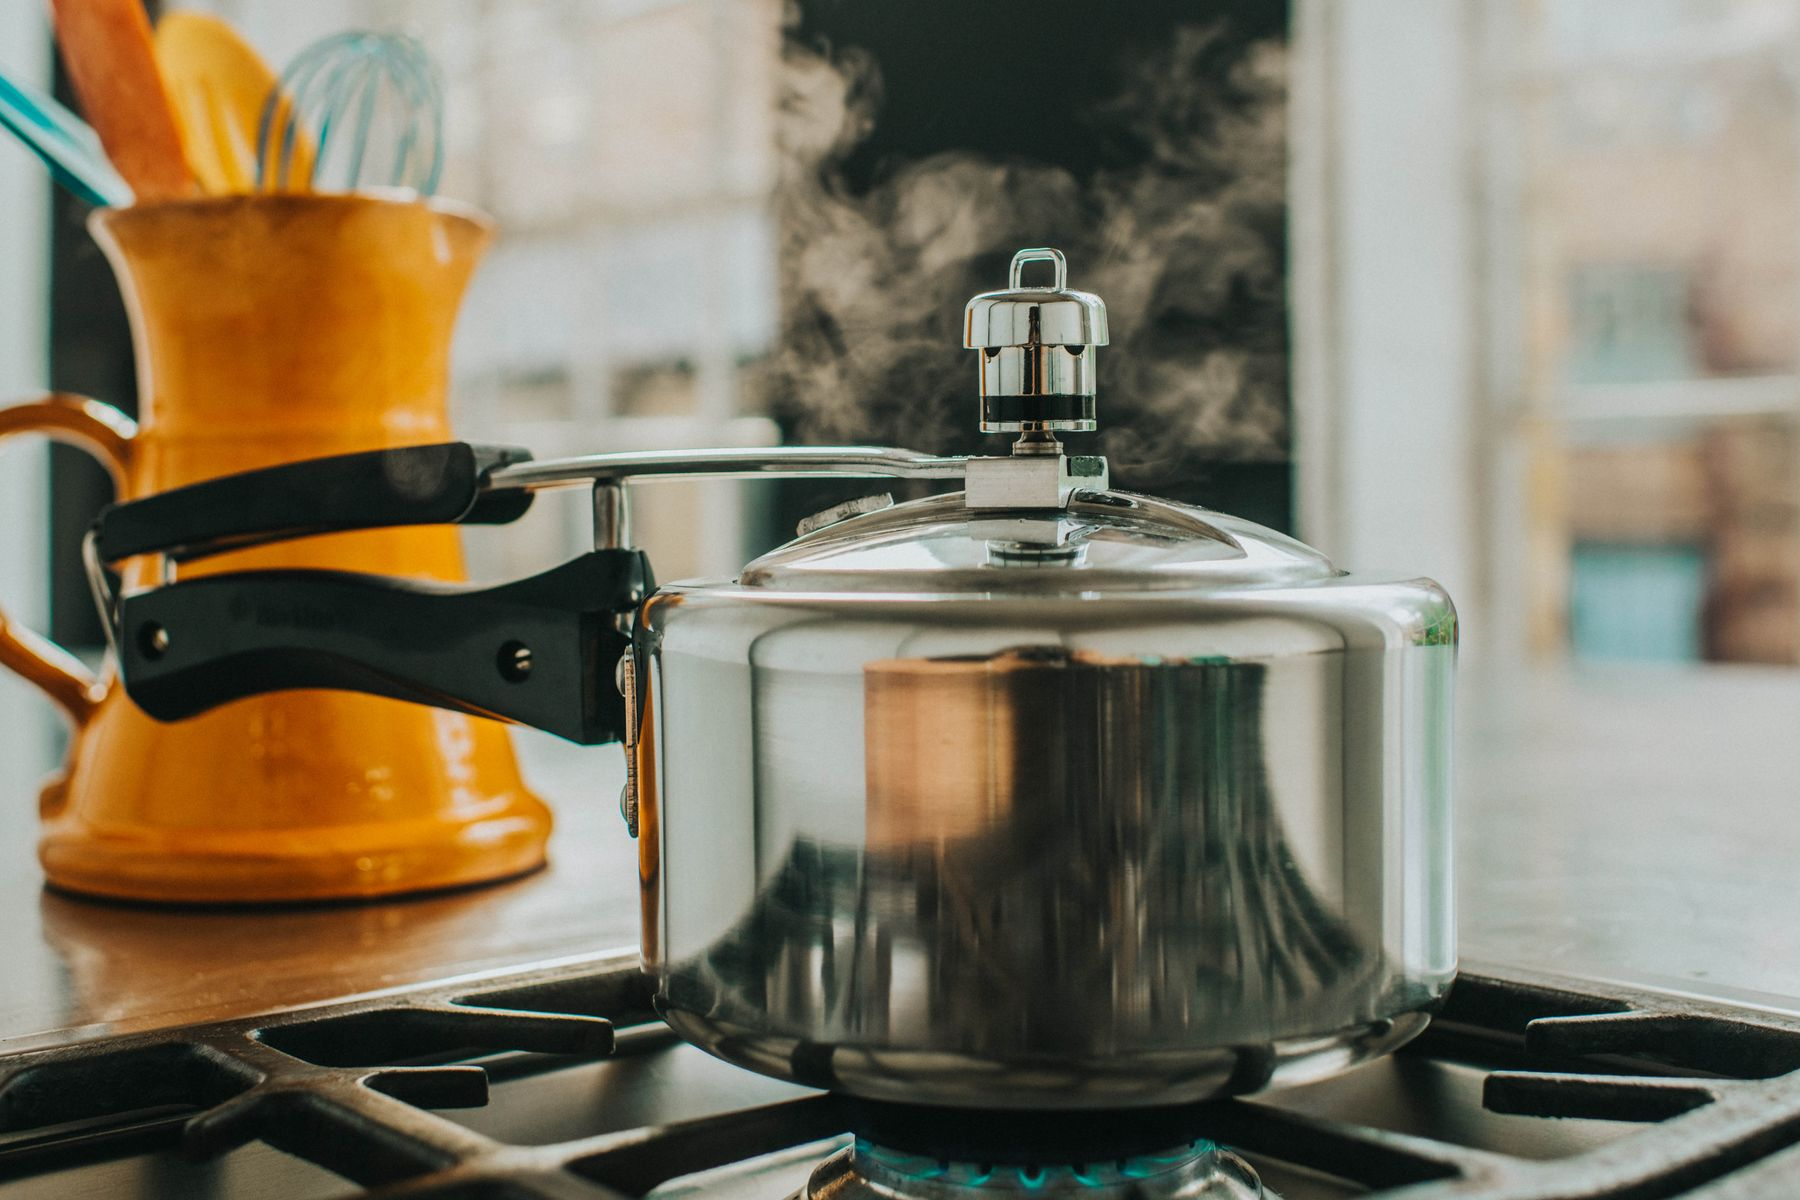 pressure cooker cooking on top of a stove